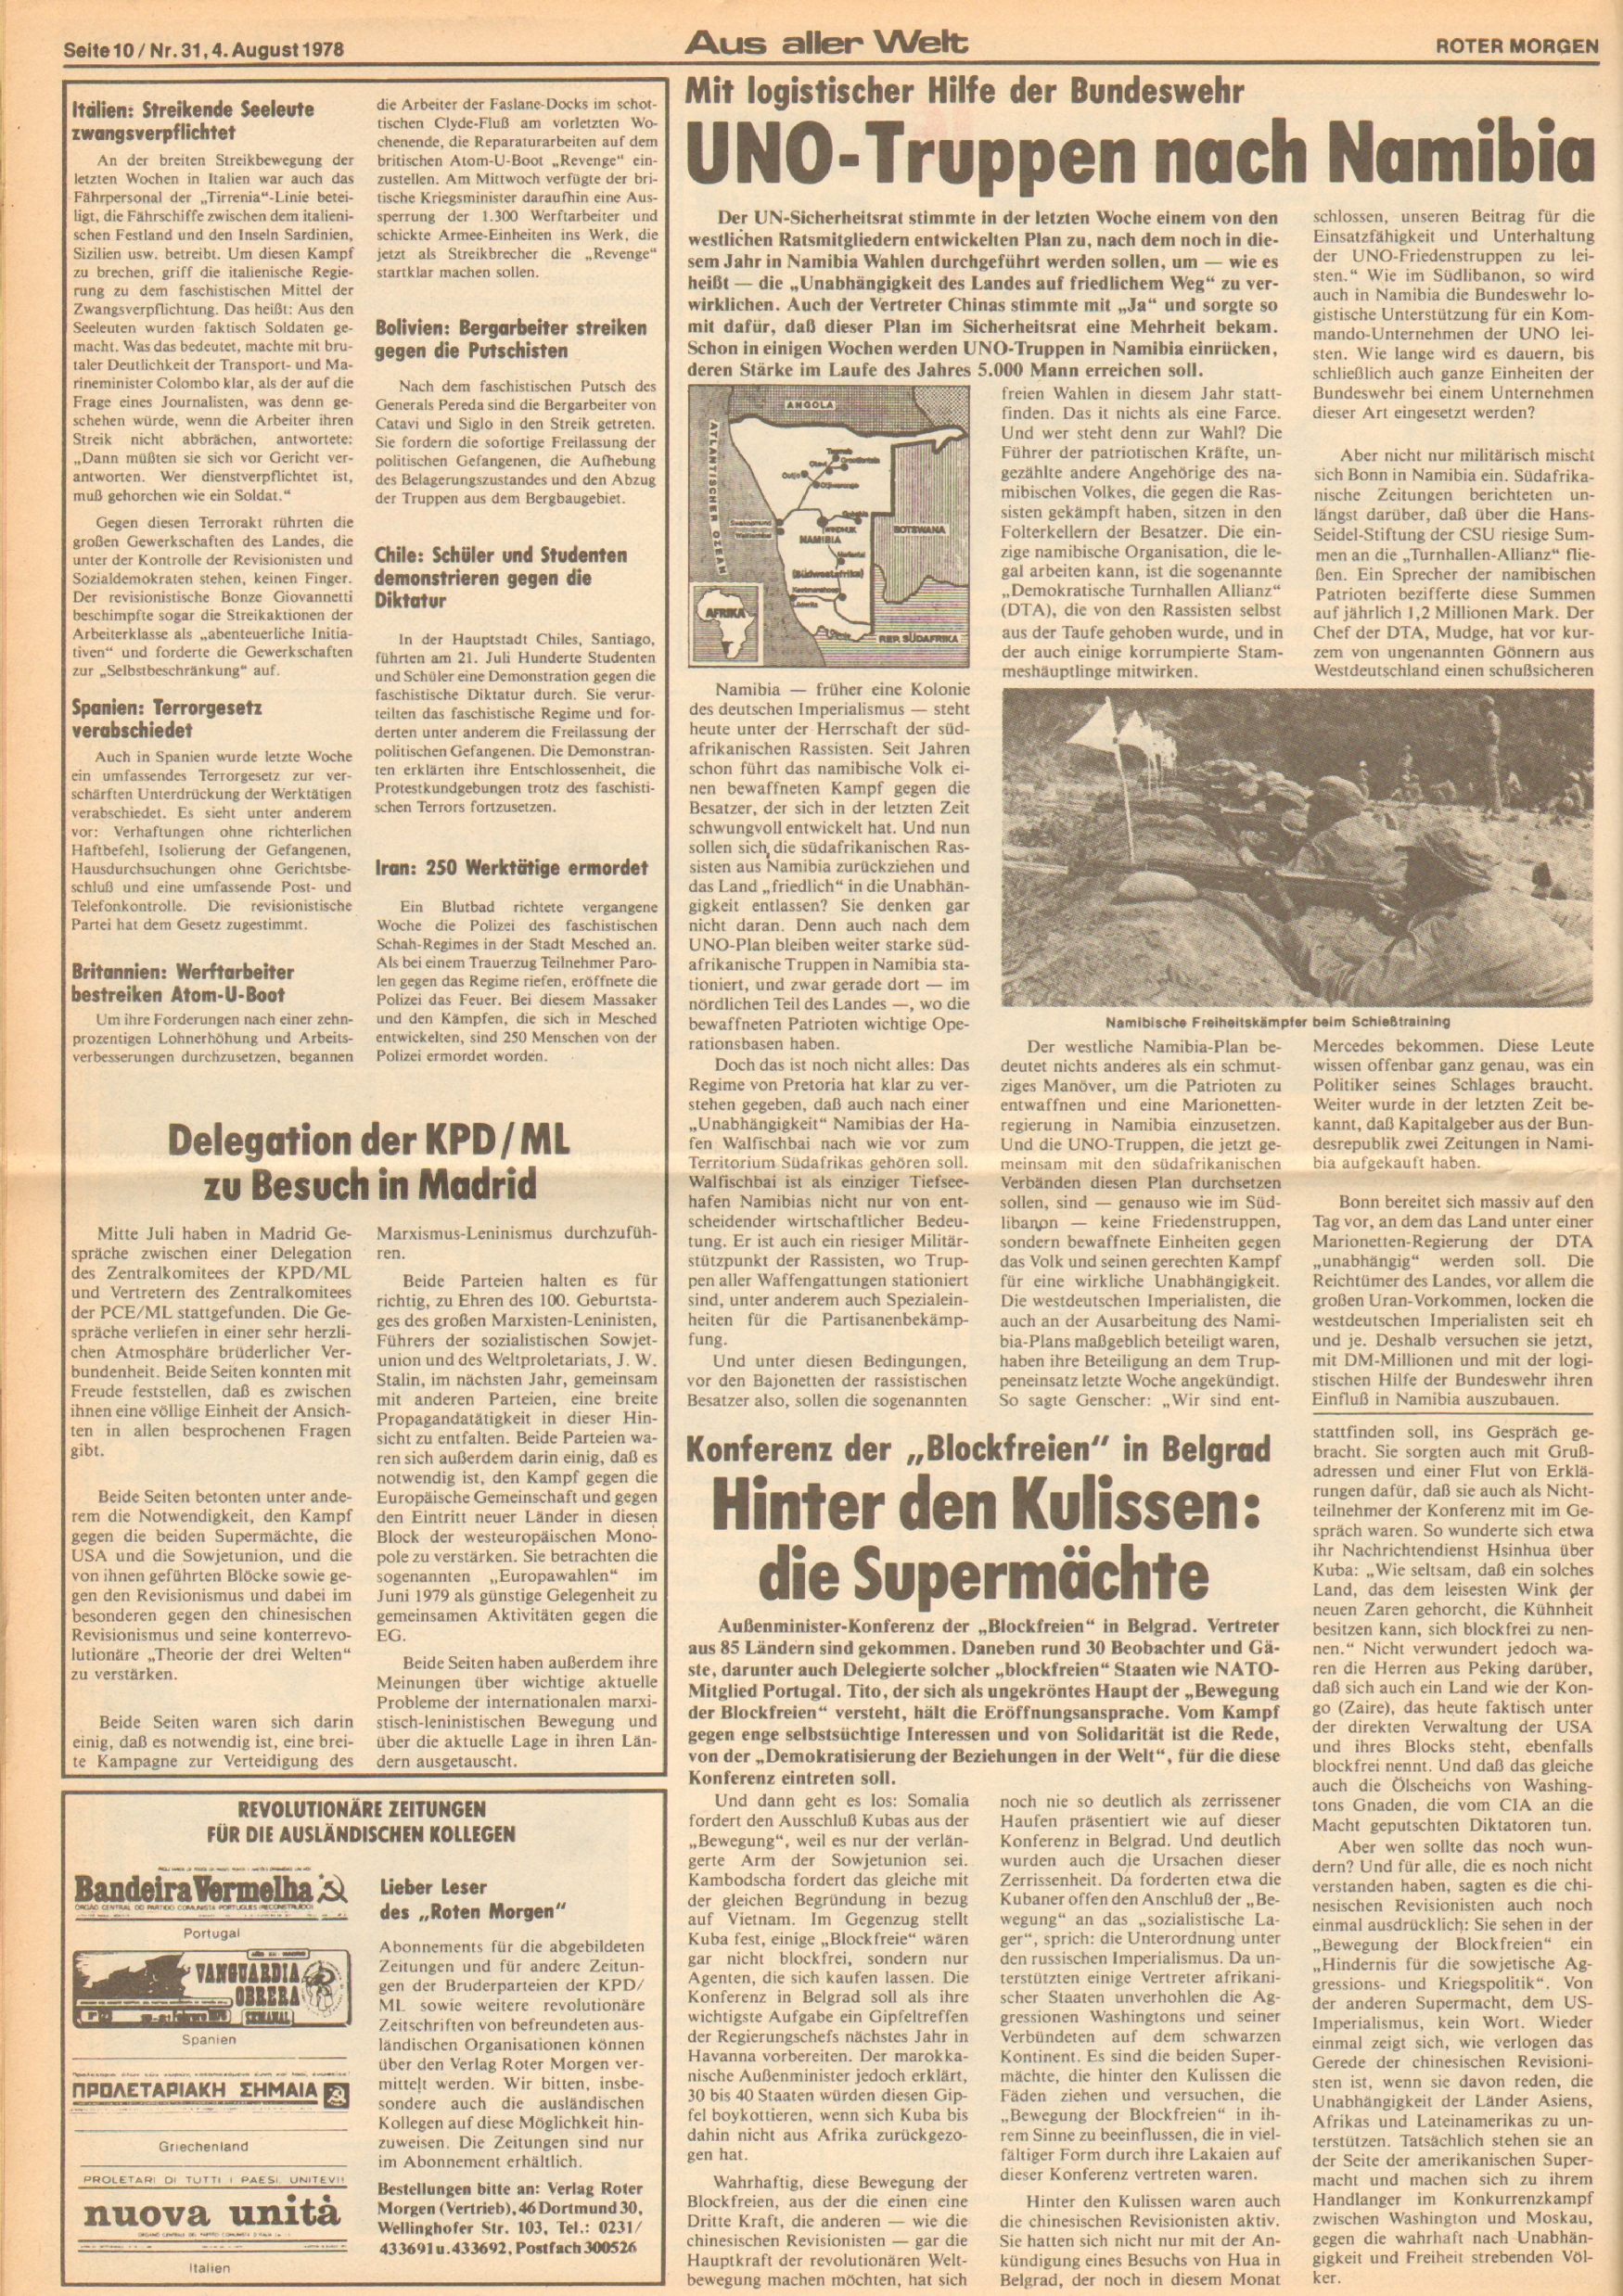 Roter Morgen, 12. Jg., 4. August 1978, Nr. 31, Seite 10